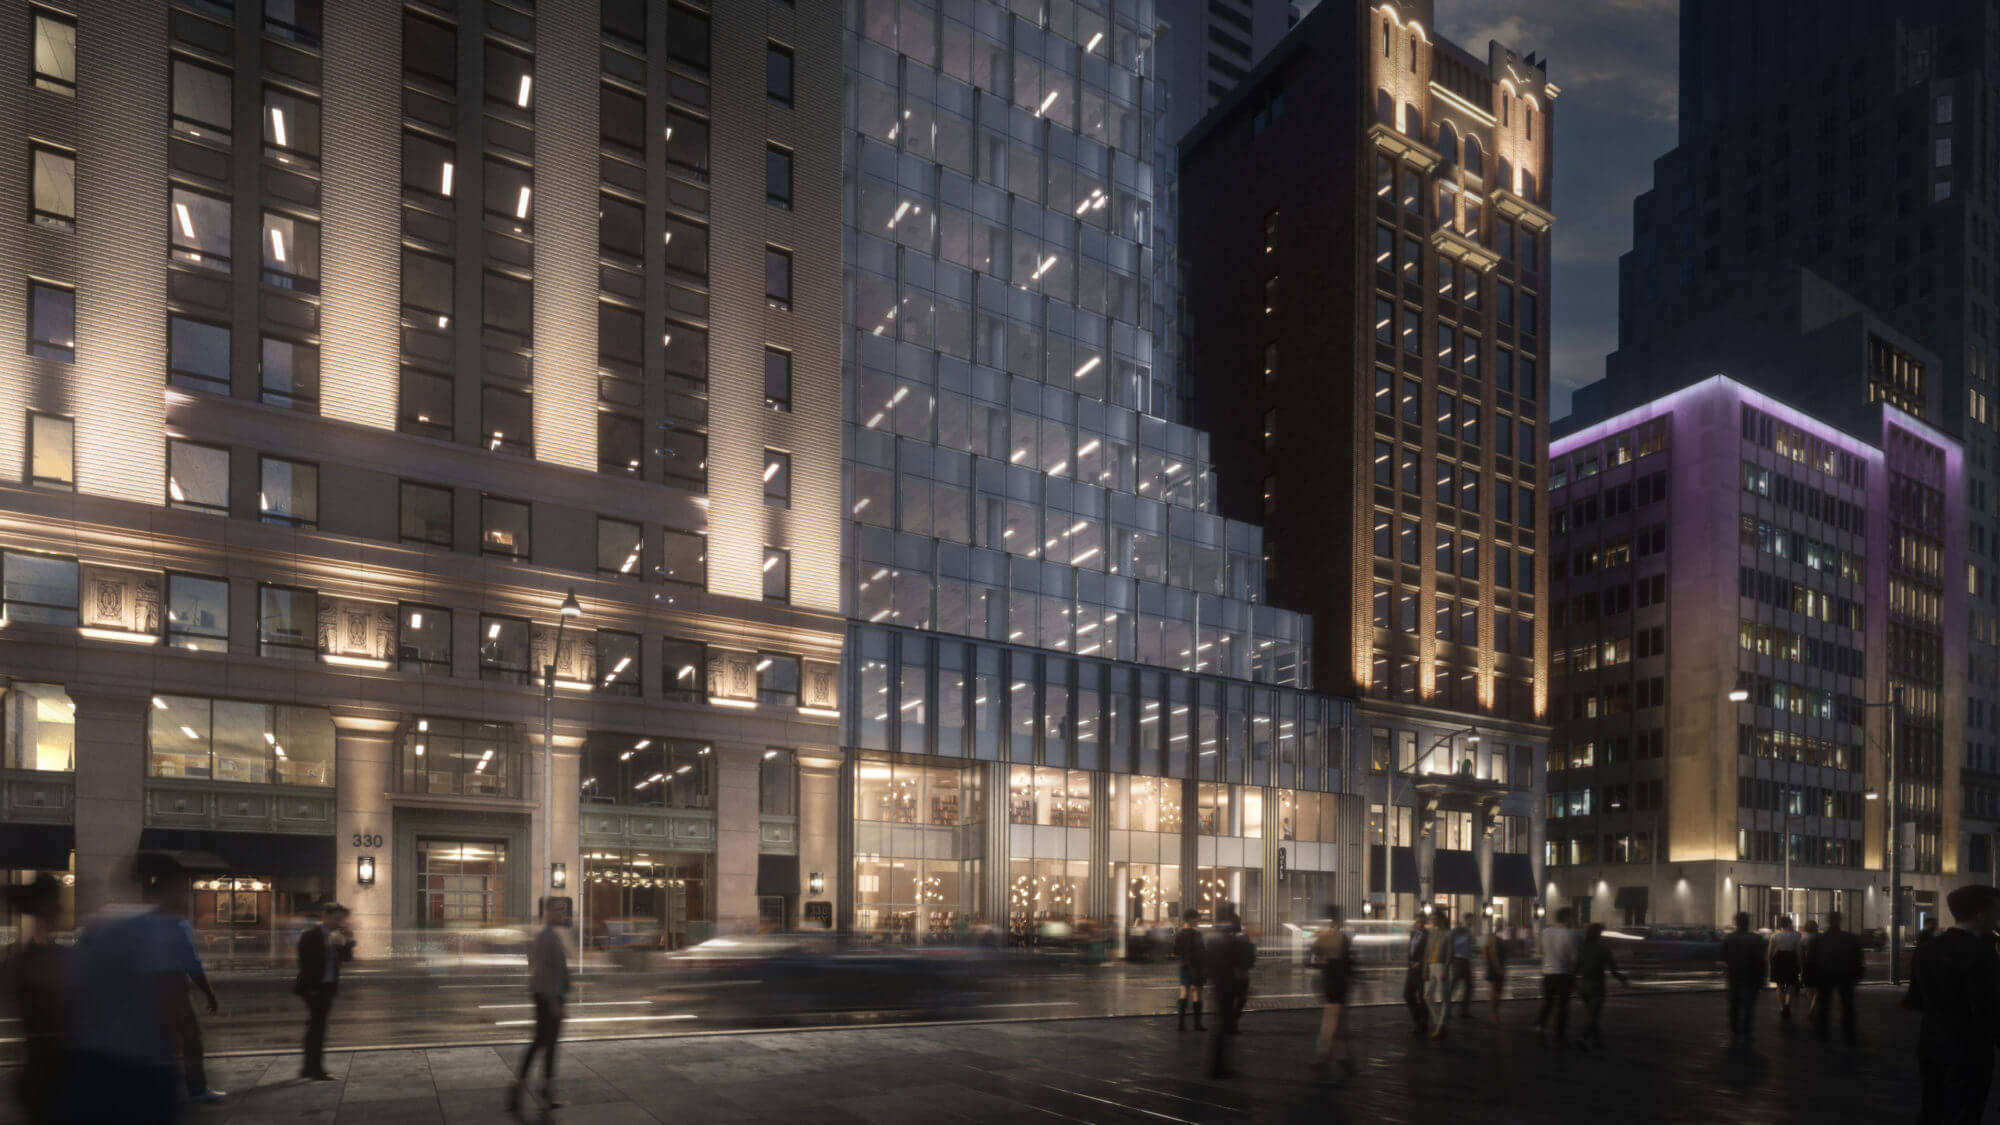 Moody street level rendering of Bay street historical buildings with exterior lighting and people walking past.